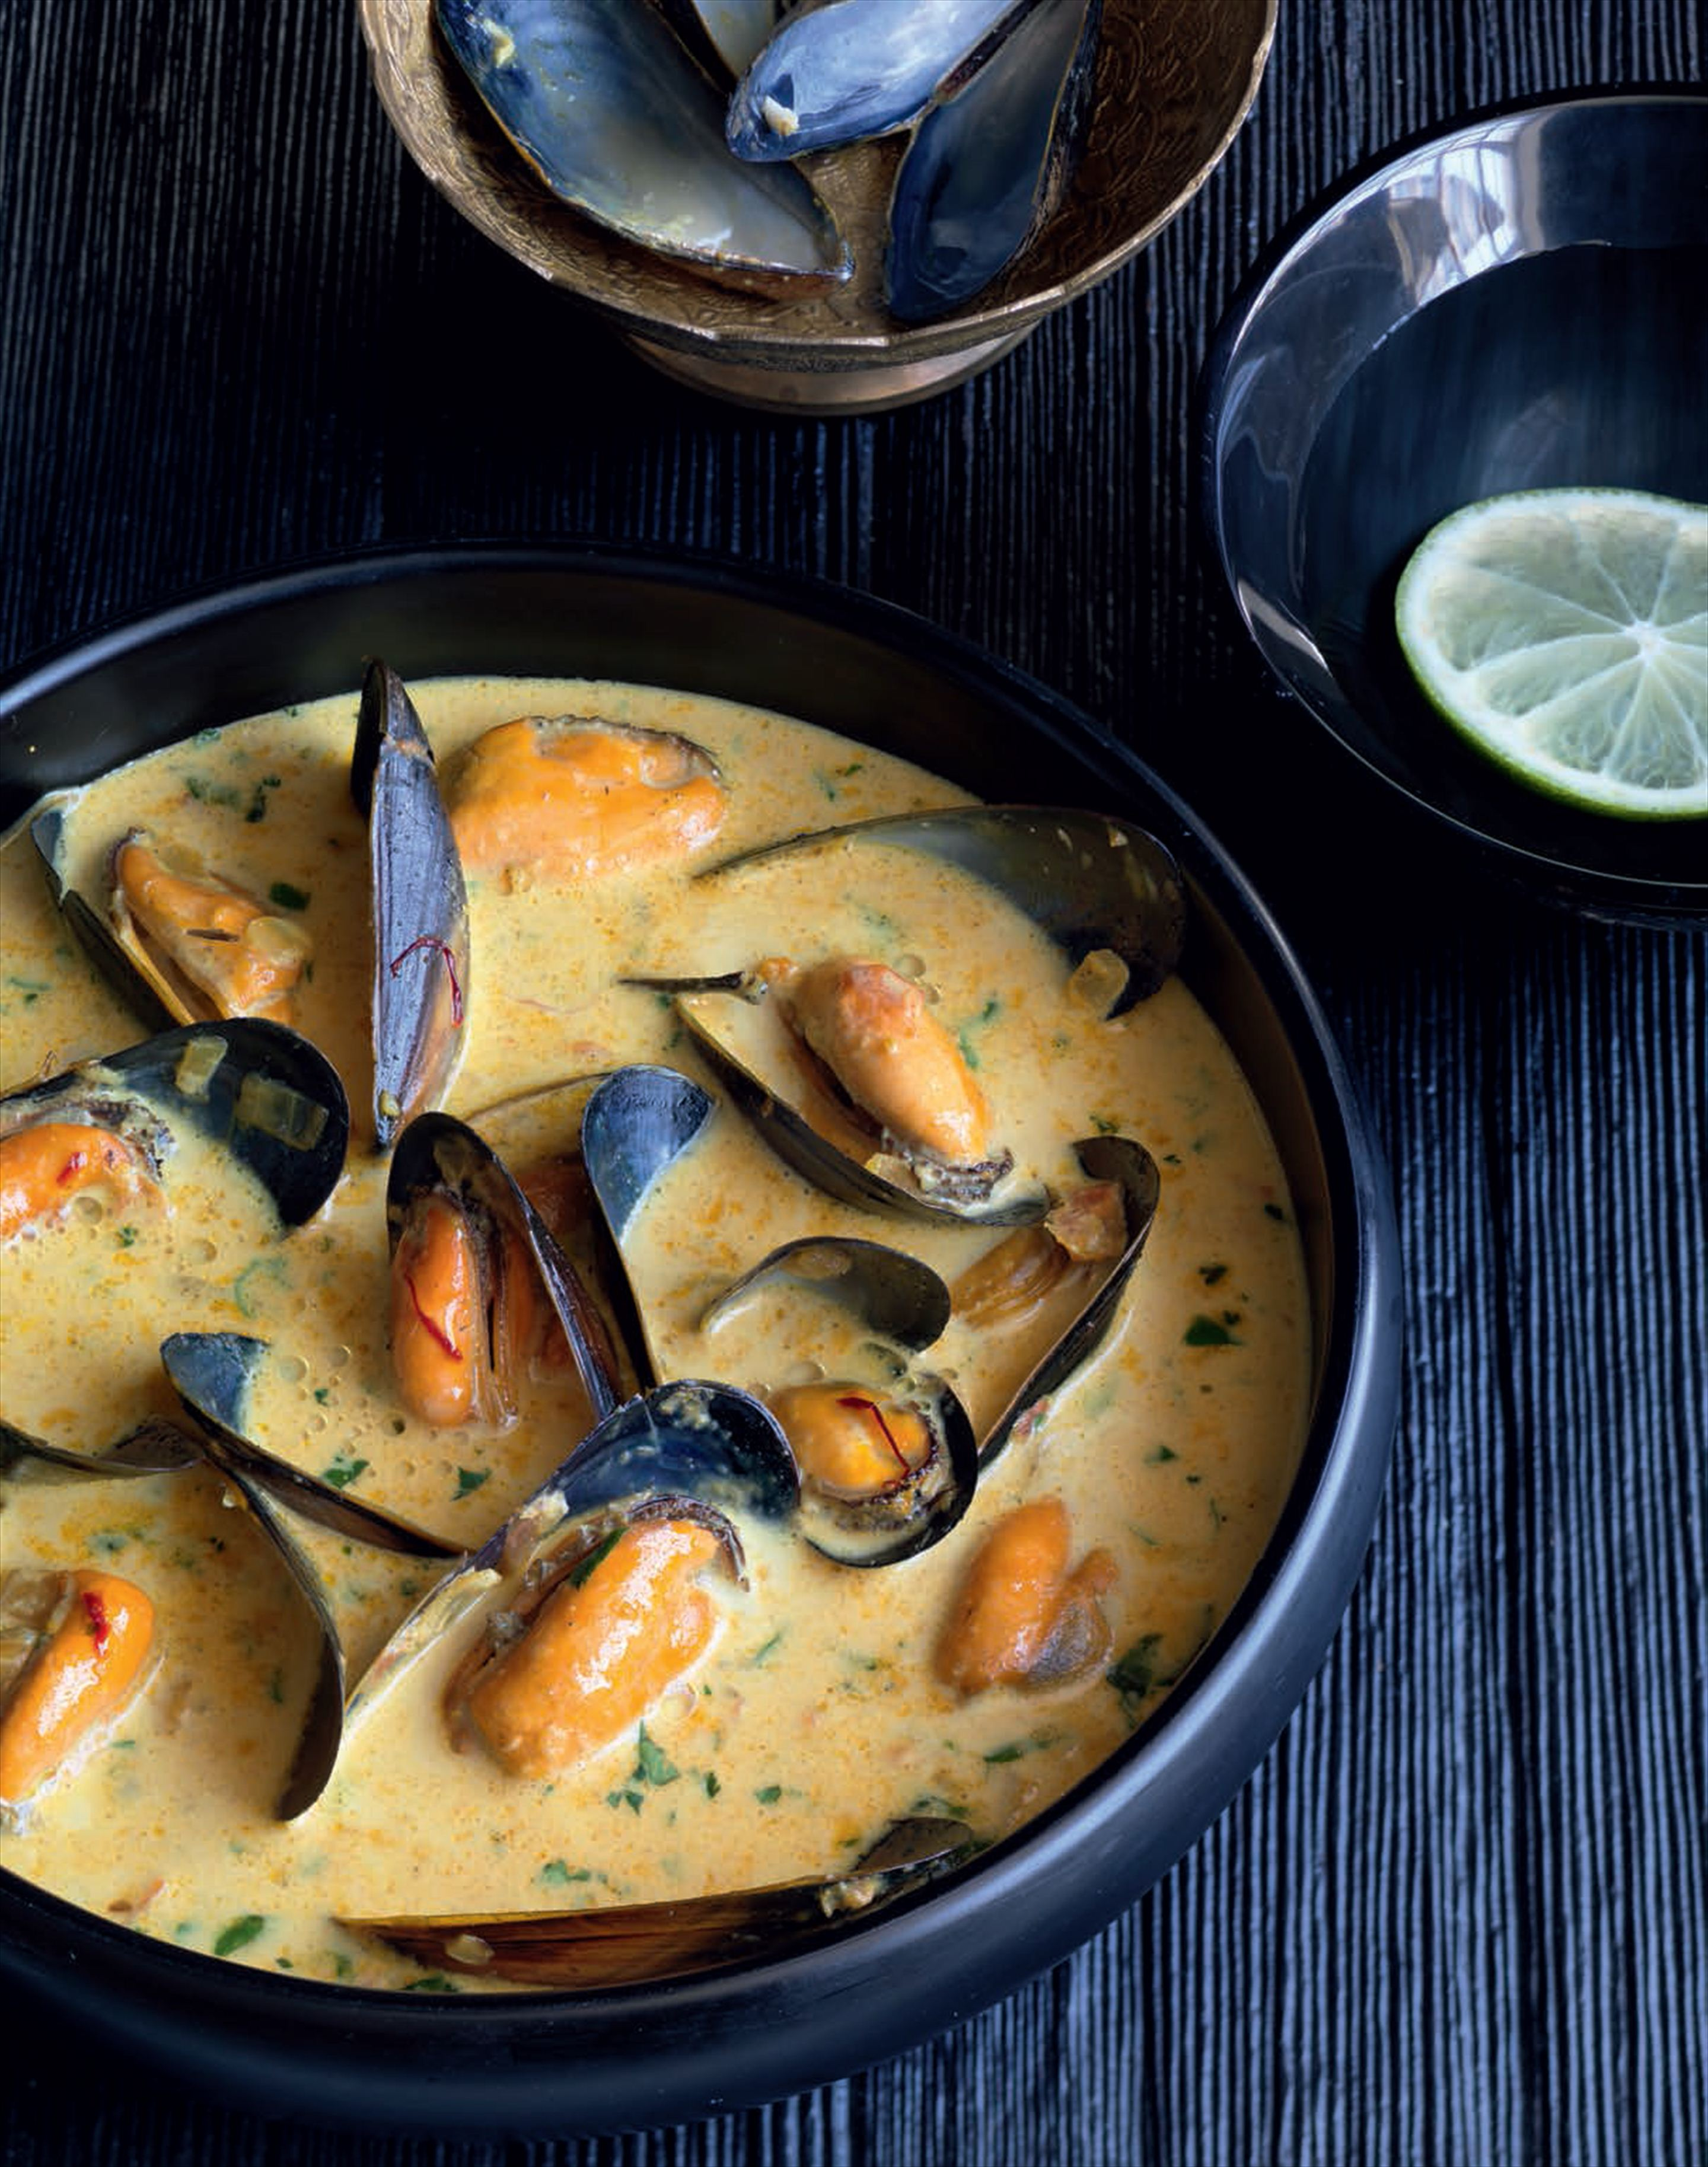 Mussels with saffron